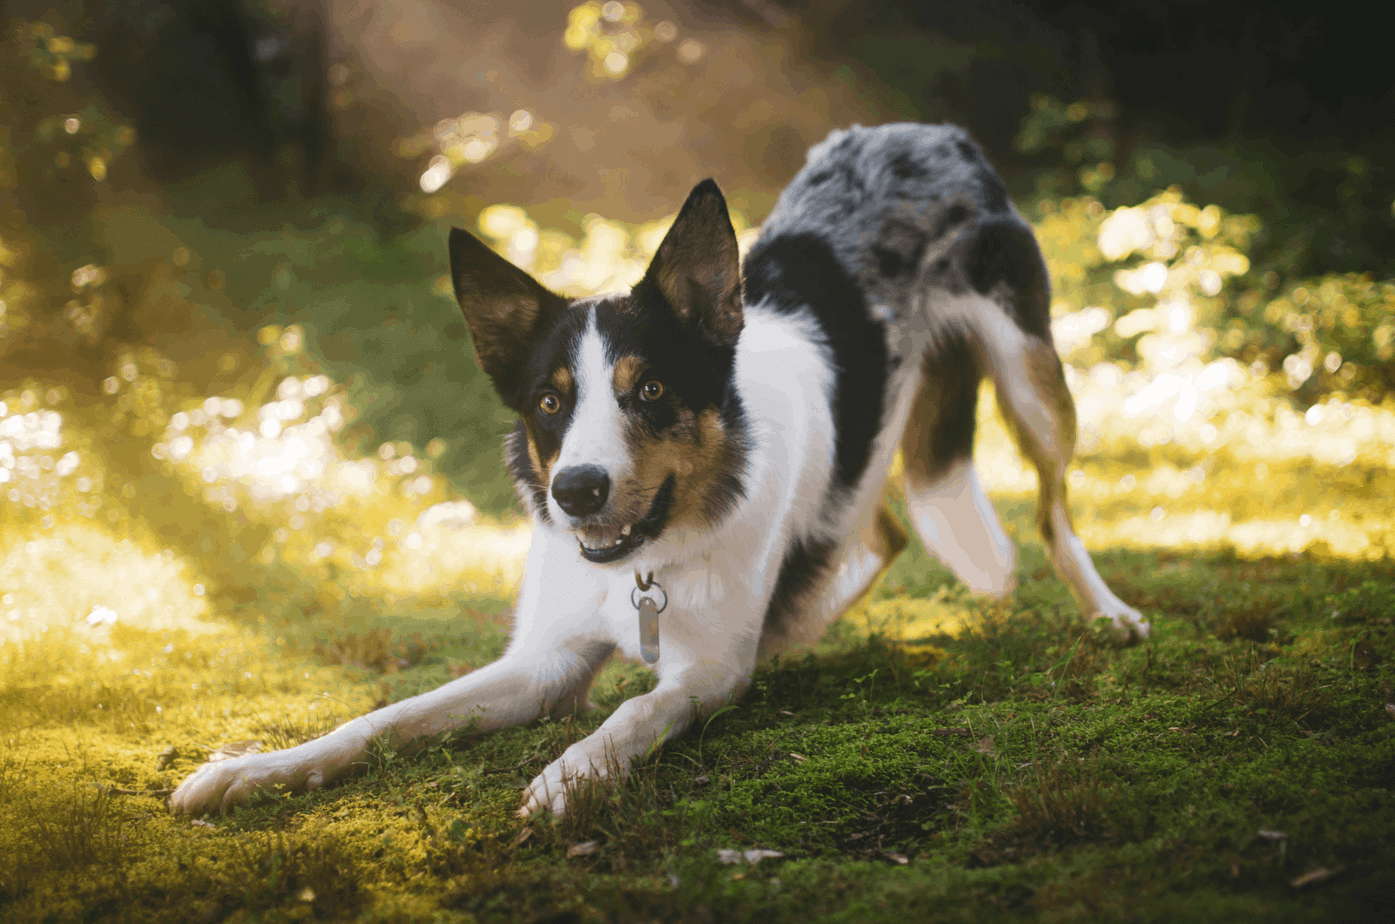 Australian Shepherd plays in grass. A dog's symptoms from grass allergies can be anywhere from hardly noticeable to obvious discomfort.